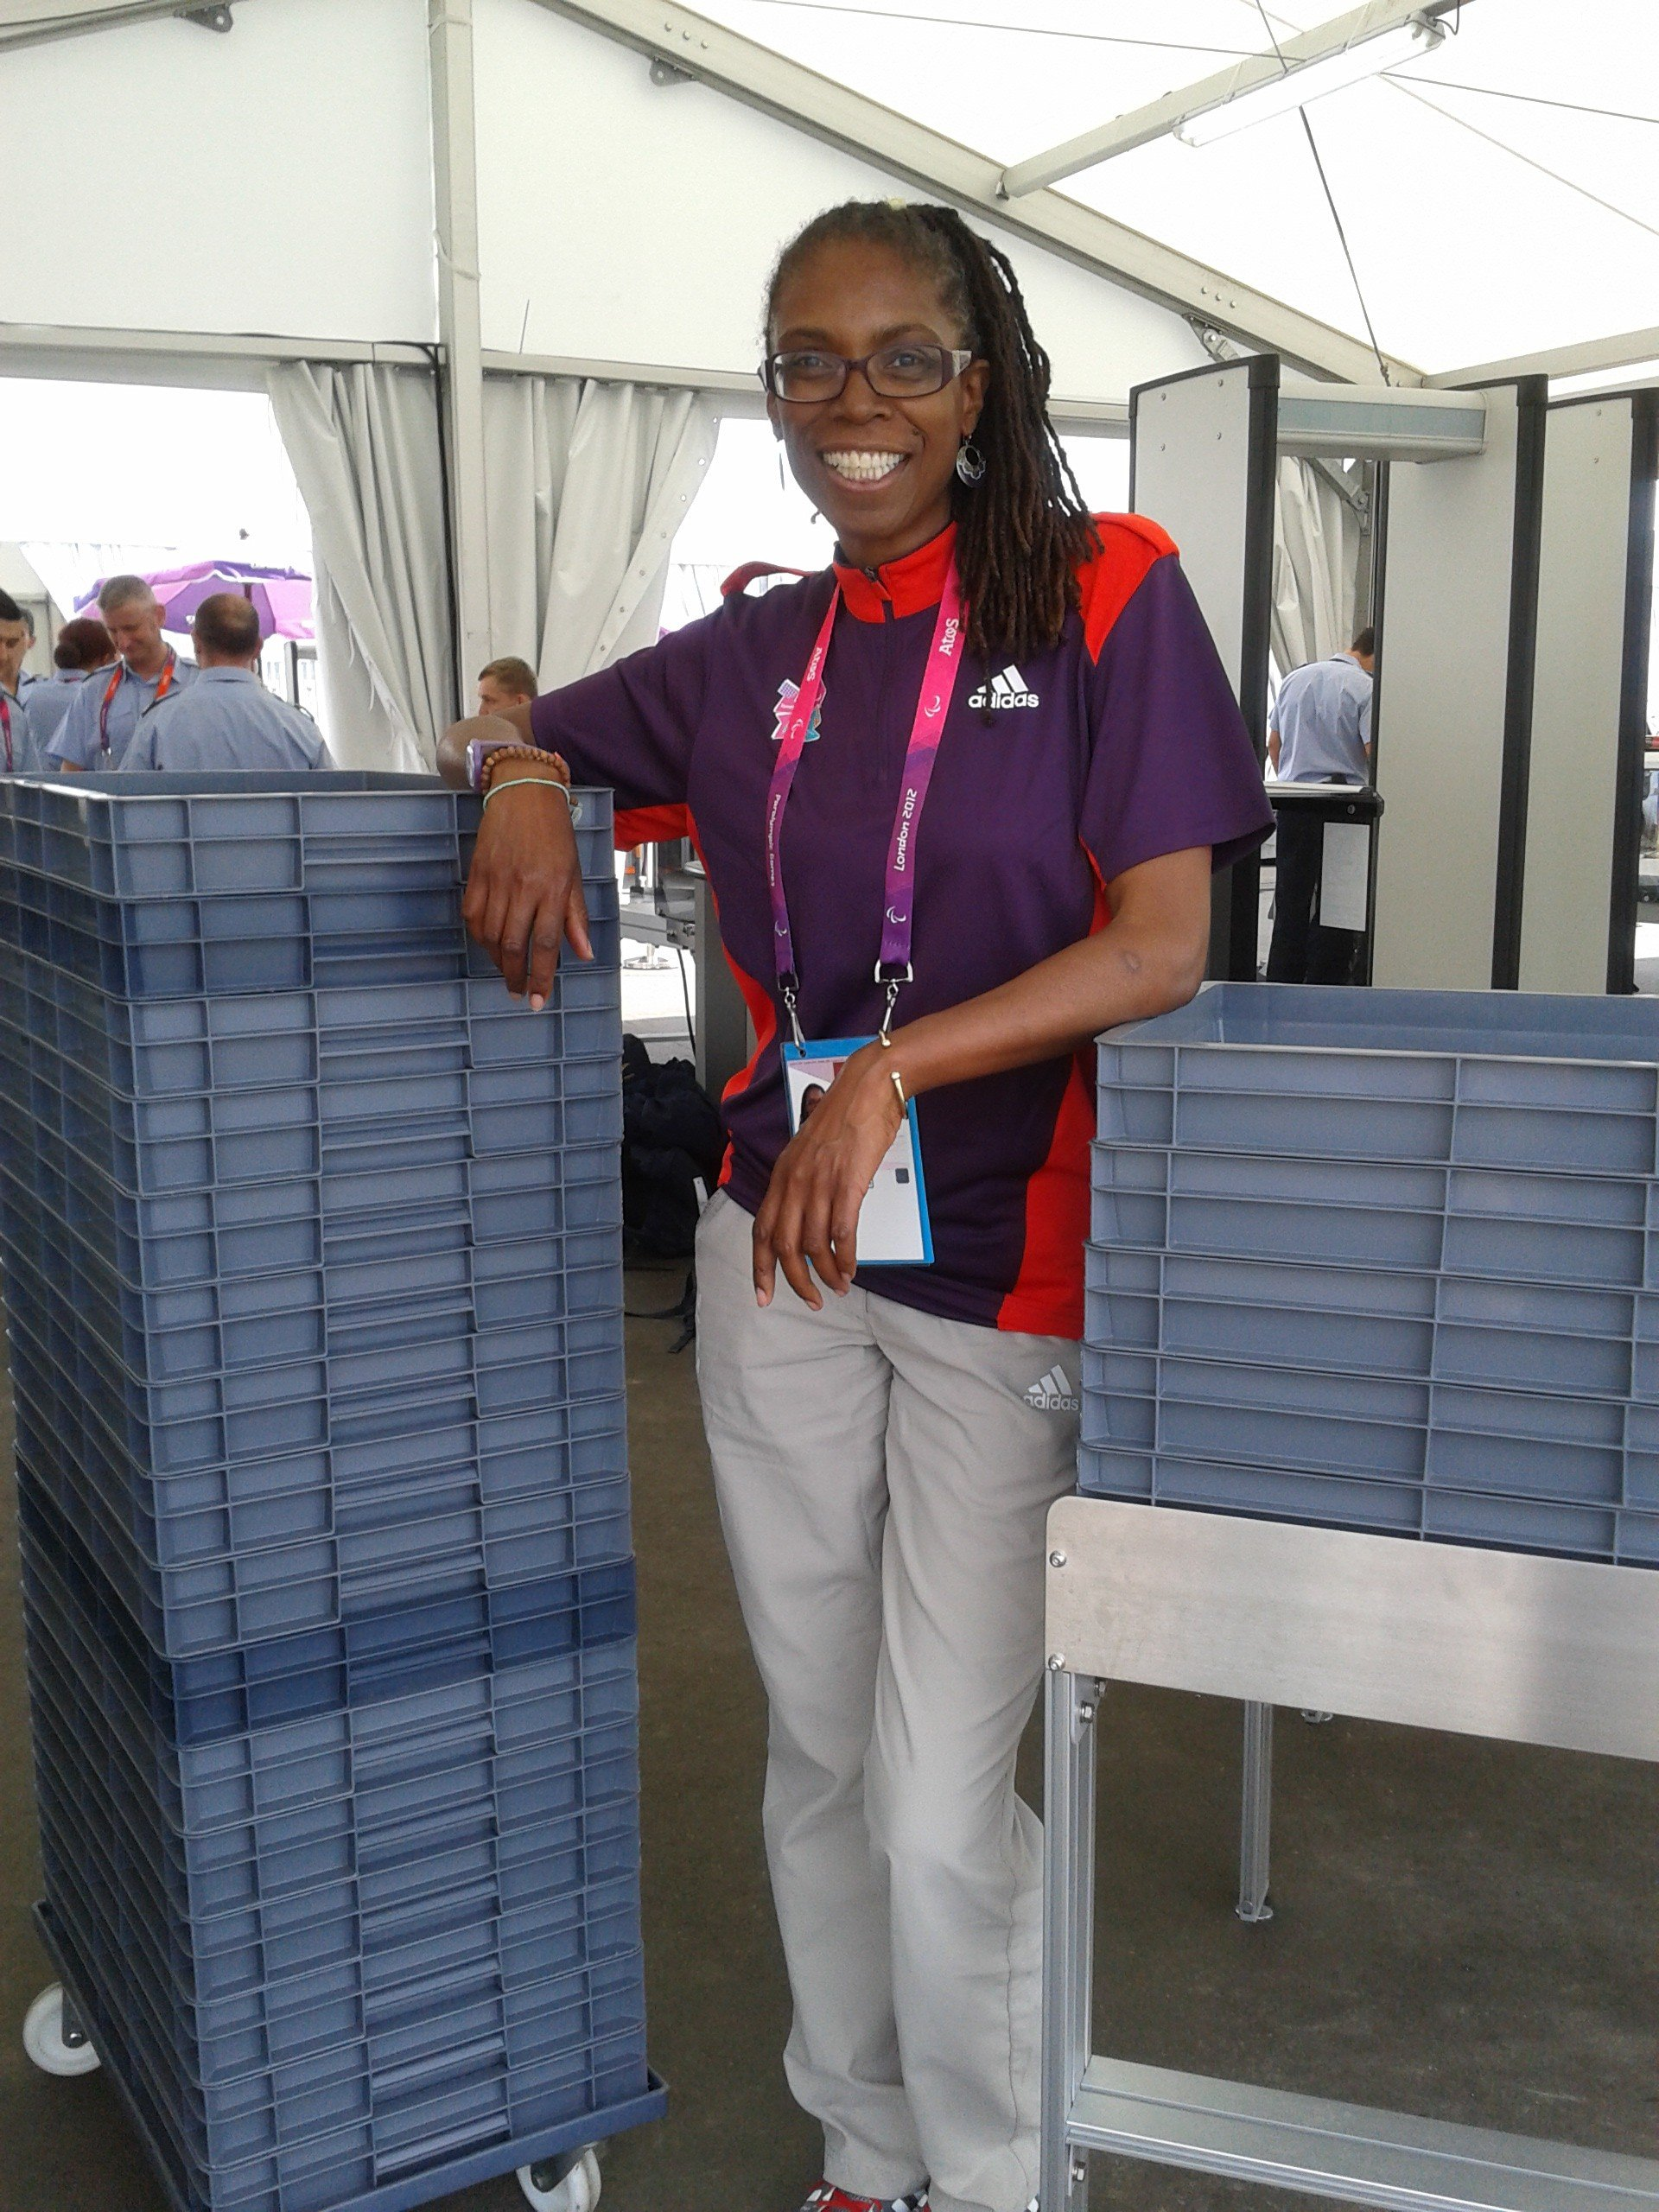 10 Things I Did More Of As A London 2012 Volunteer